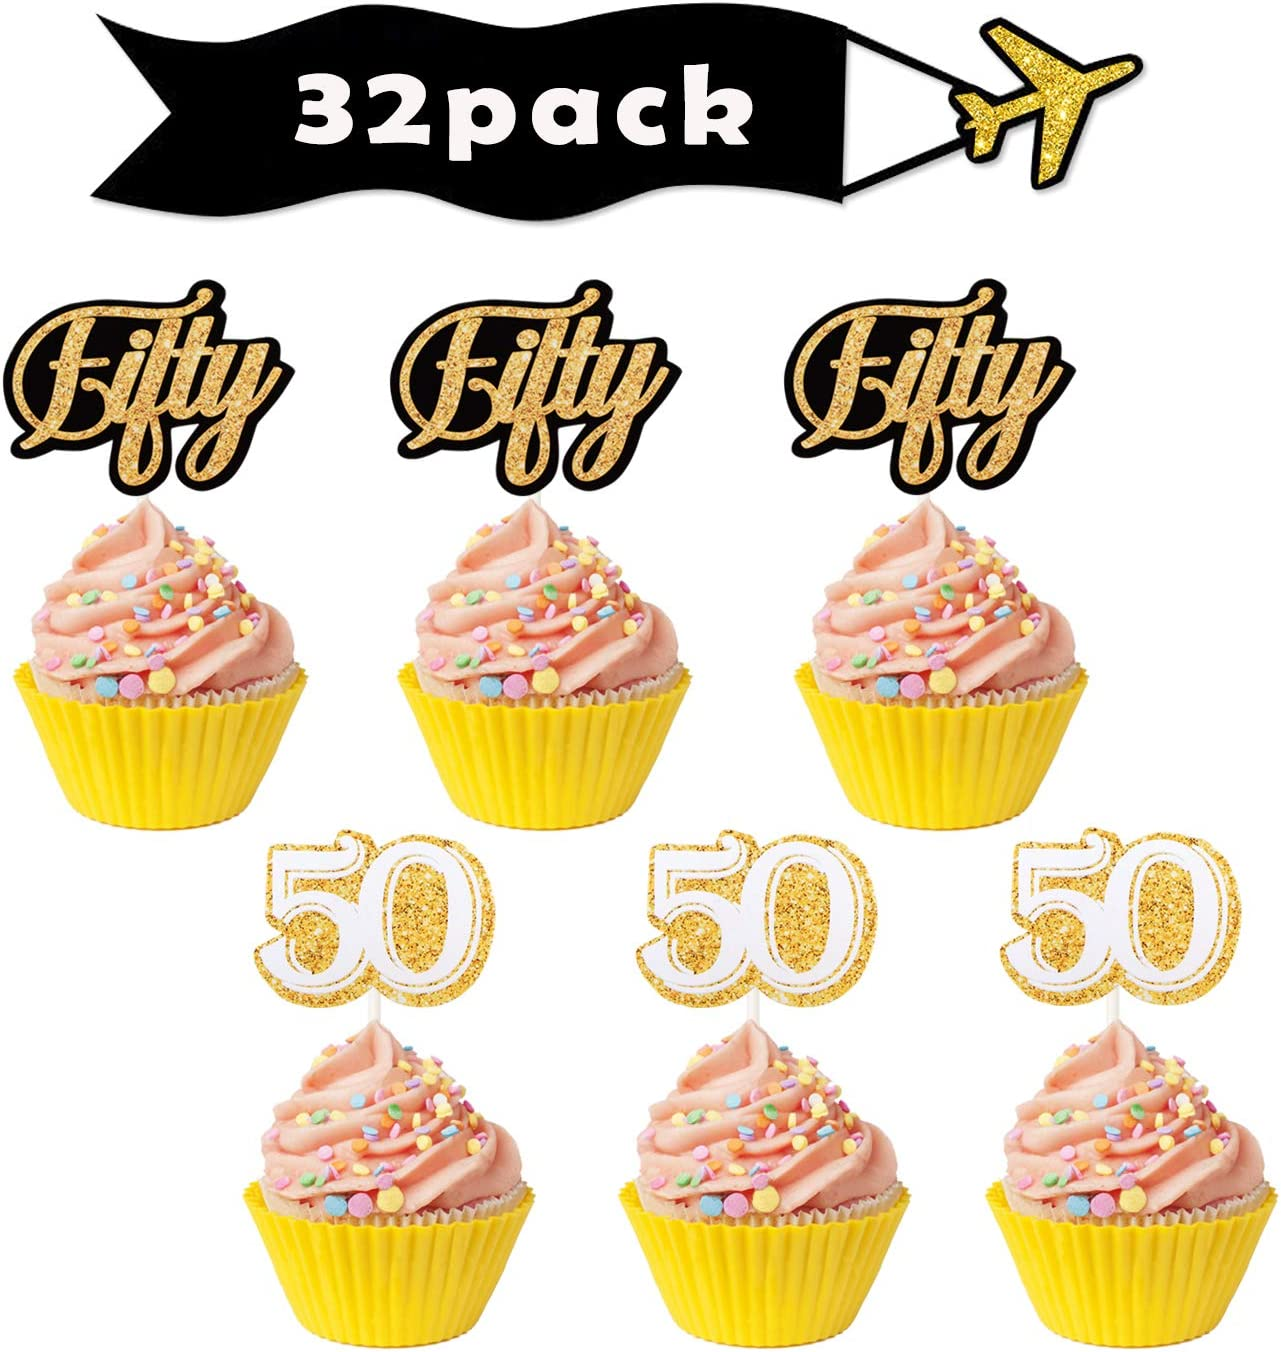 Gold 50th Fifty Cupcake Toppers - 50th Birthday Anniversary Party Dessert Decorations Supplies - Set of 32